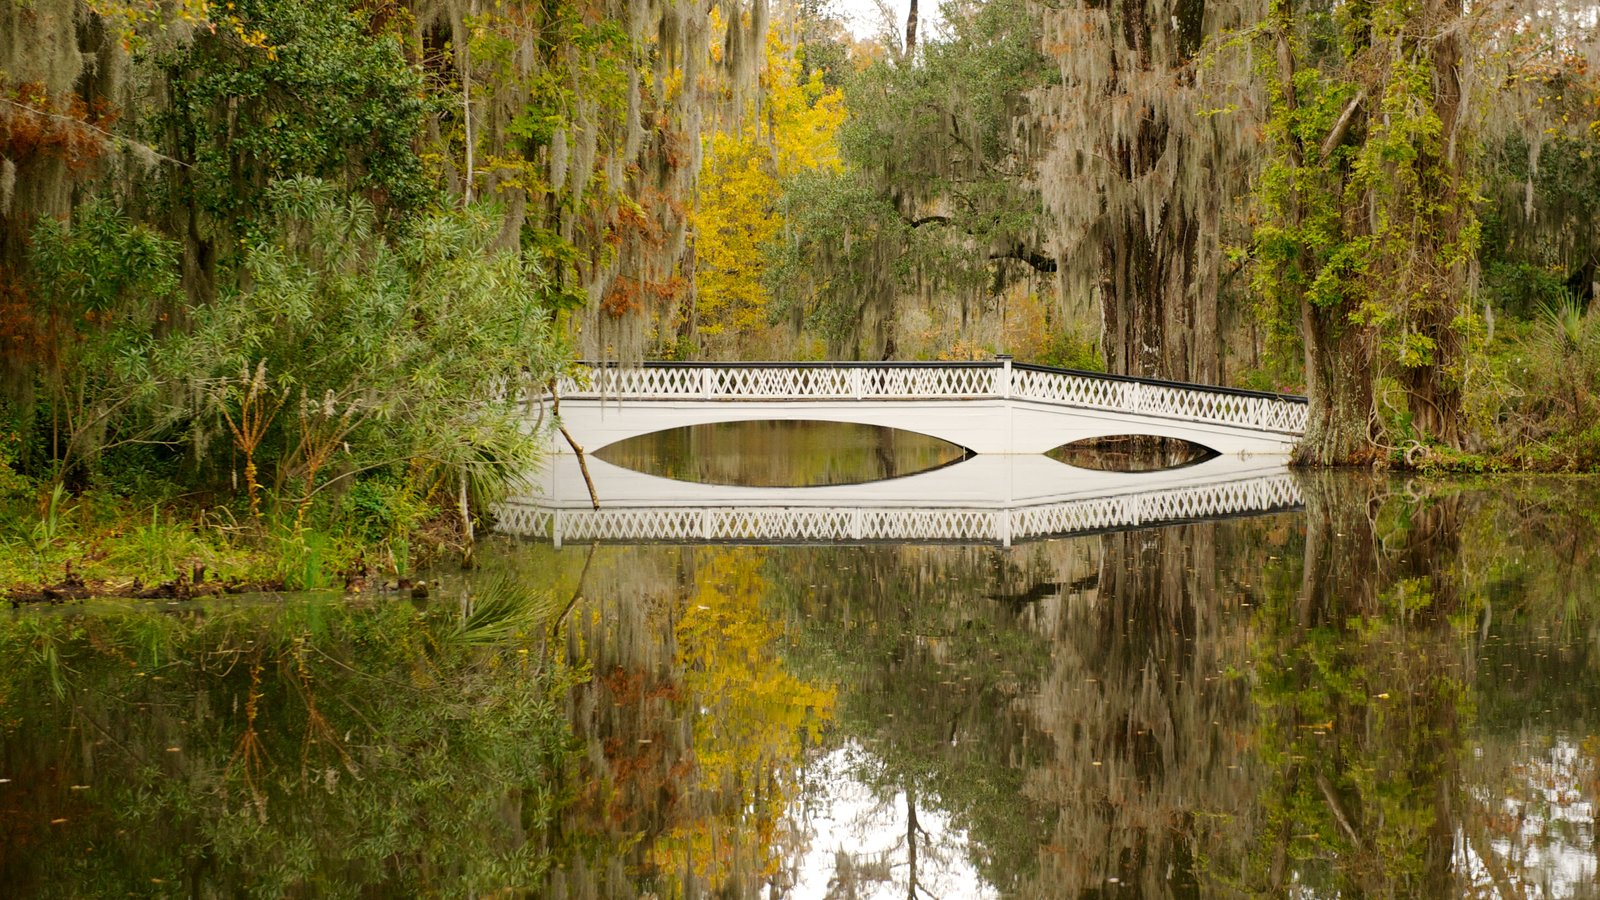 Magnolia Plantation and Gardens which includes a bridge, forests and landscape views